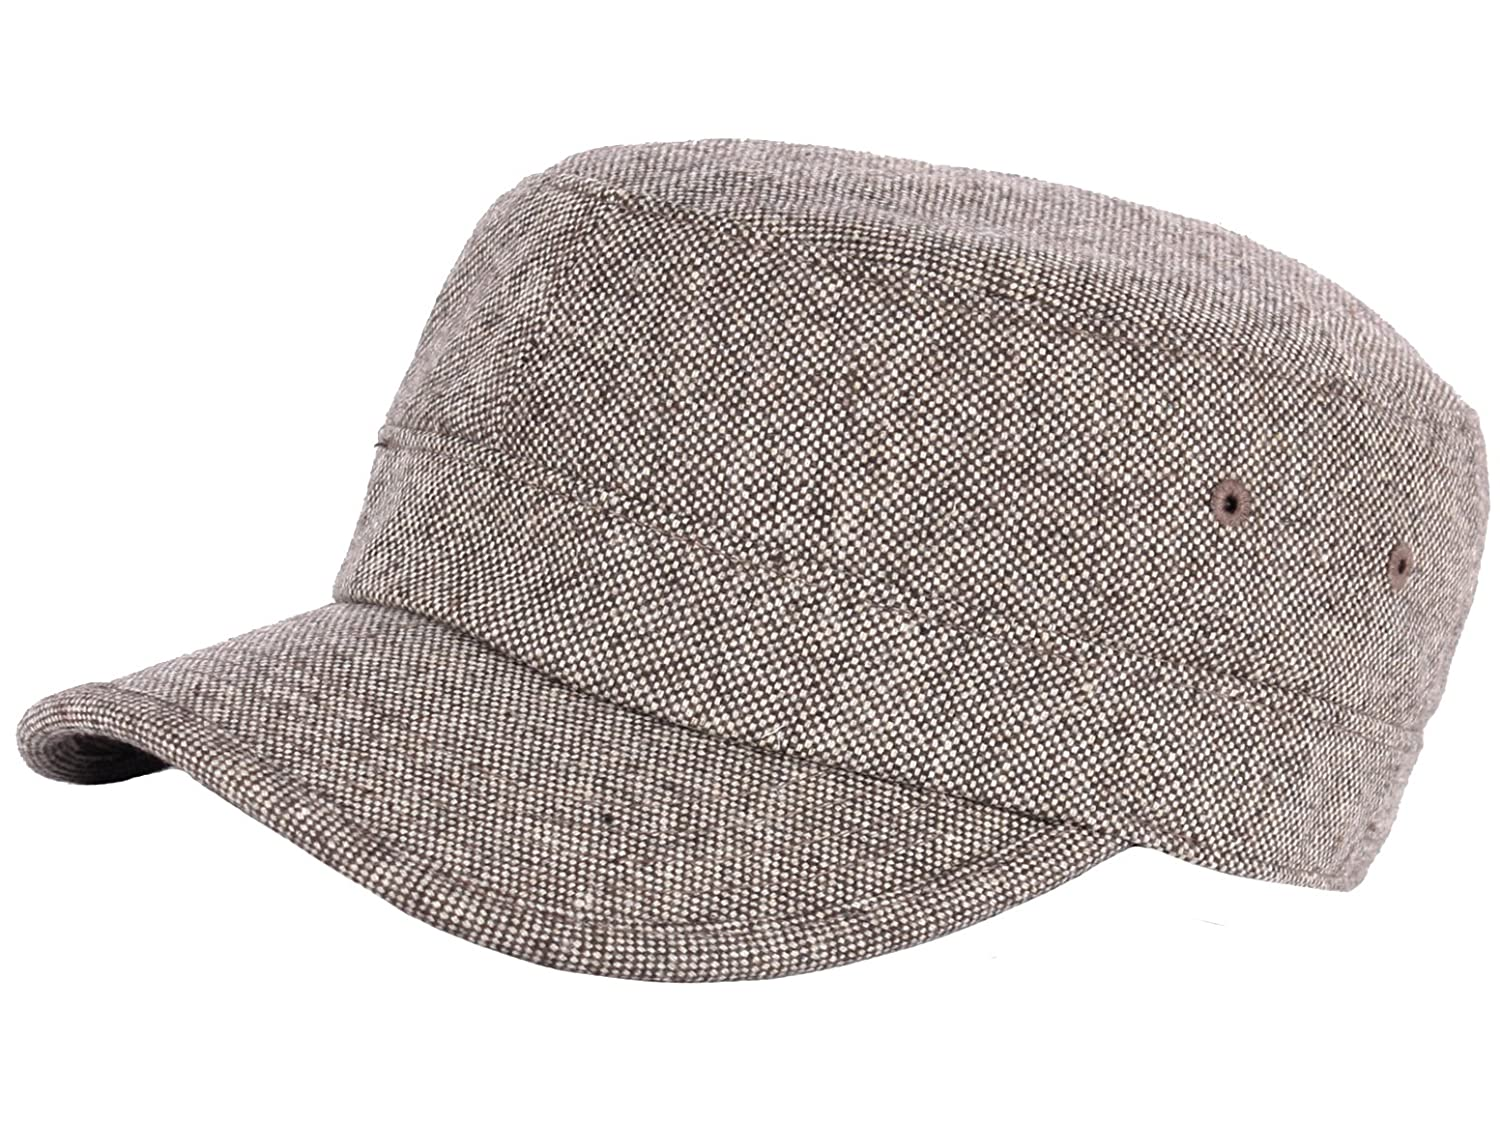 21c328398a8 RaOn A123 Homespun Harris Donegal Tweed Pattern Fabric Army Cap Cadet  Military Hat (Brown) at Amazon Men s Clothing store